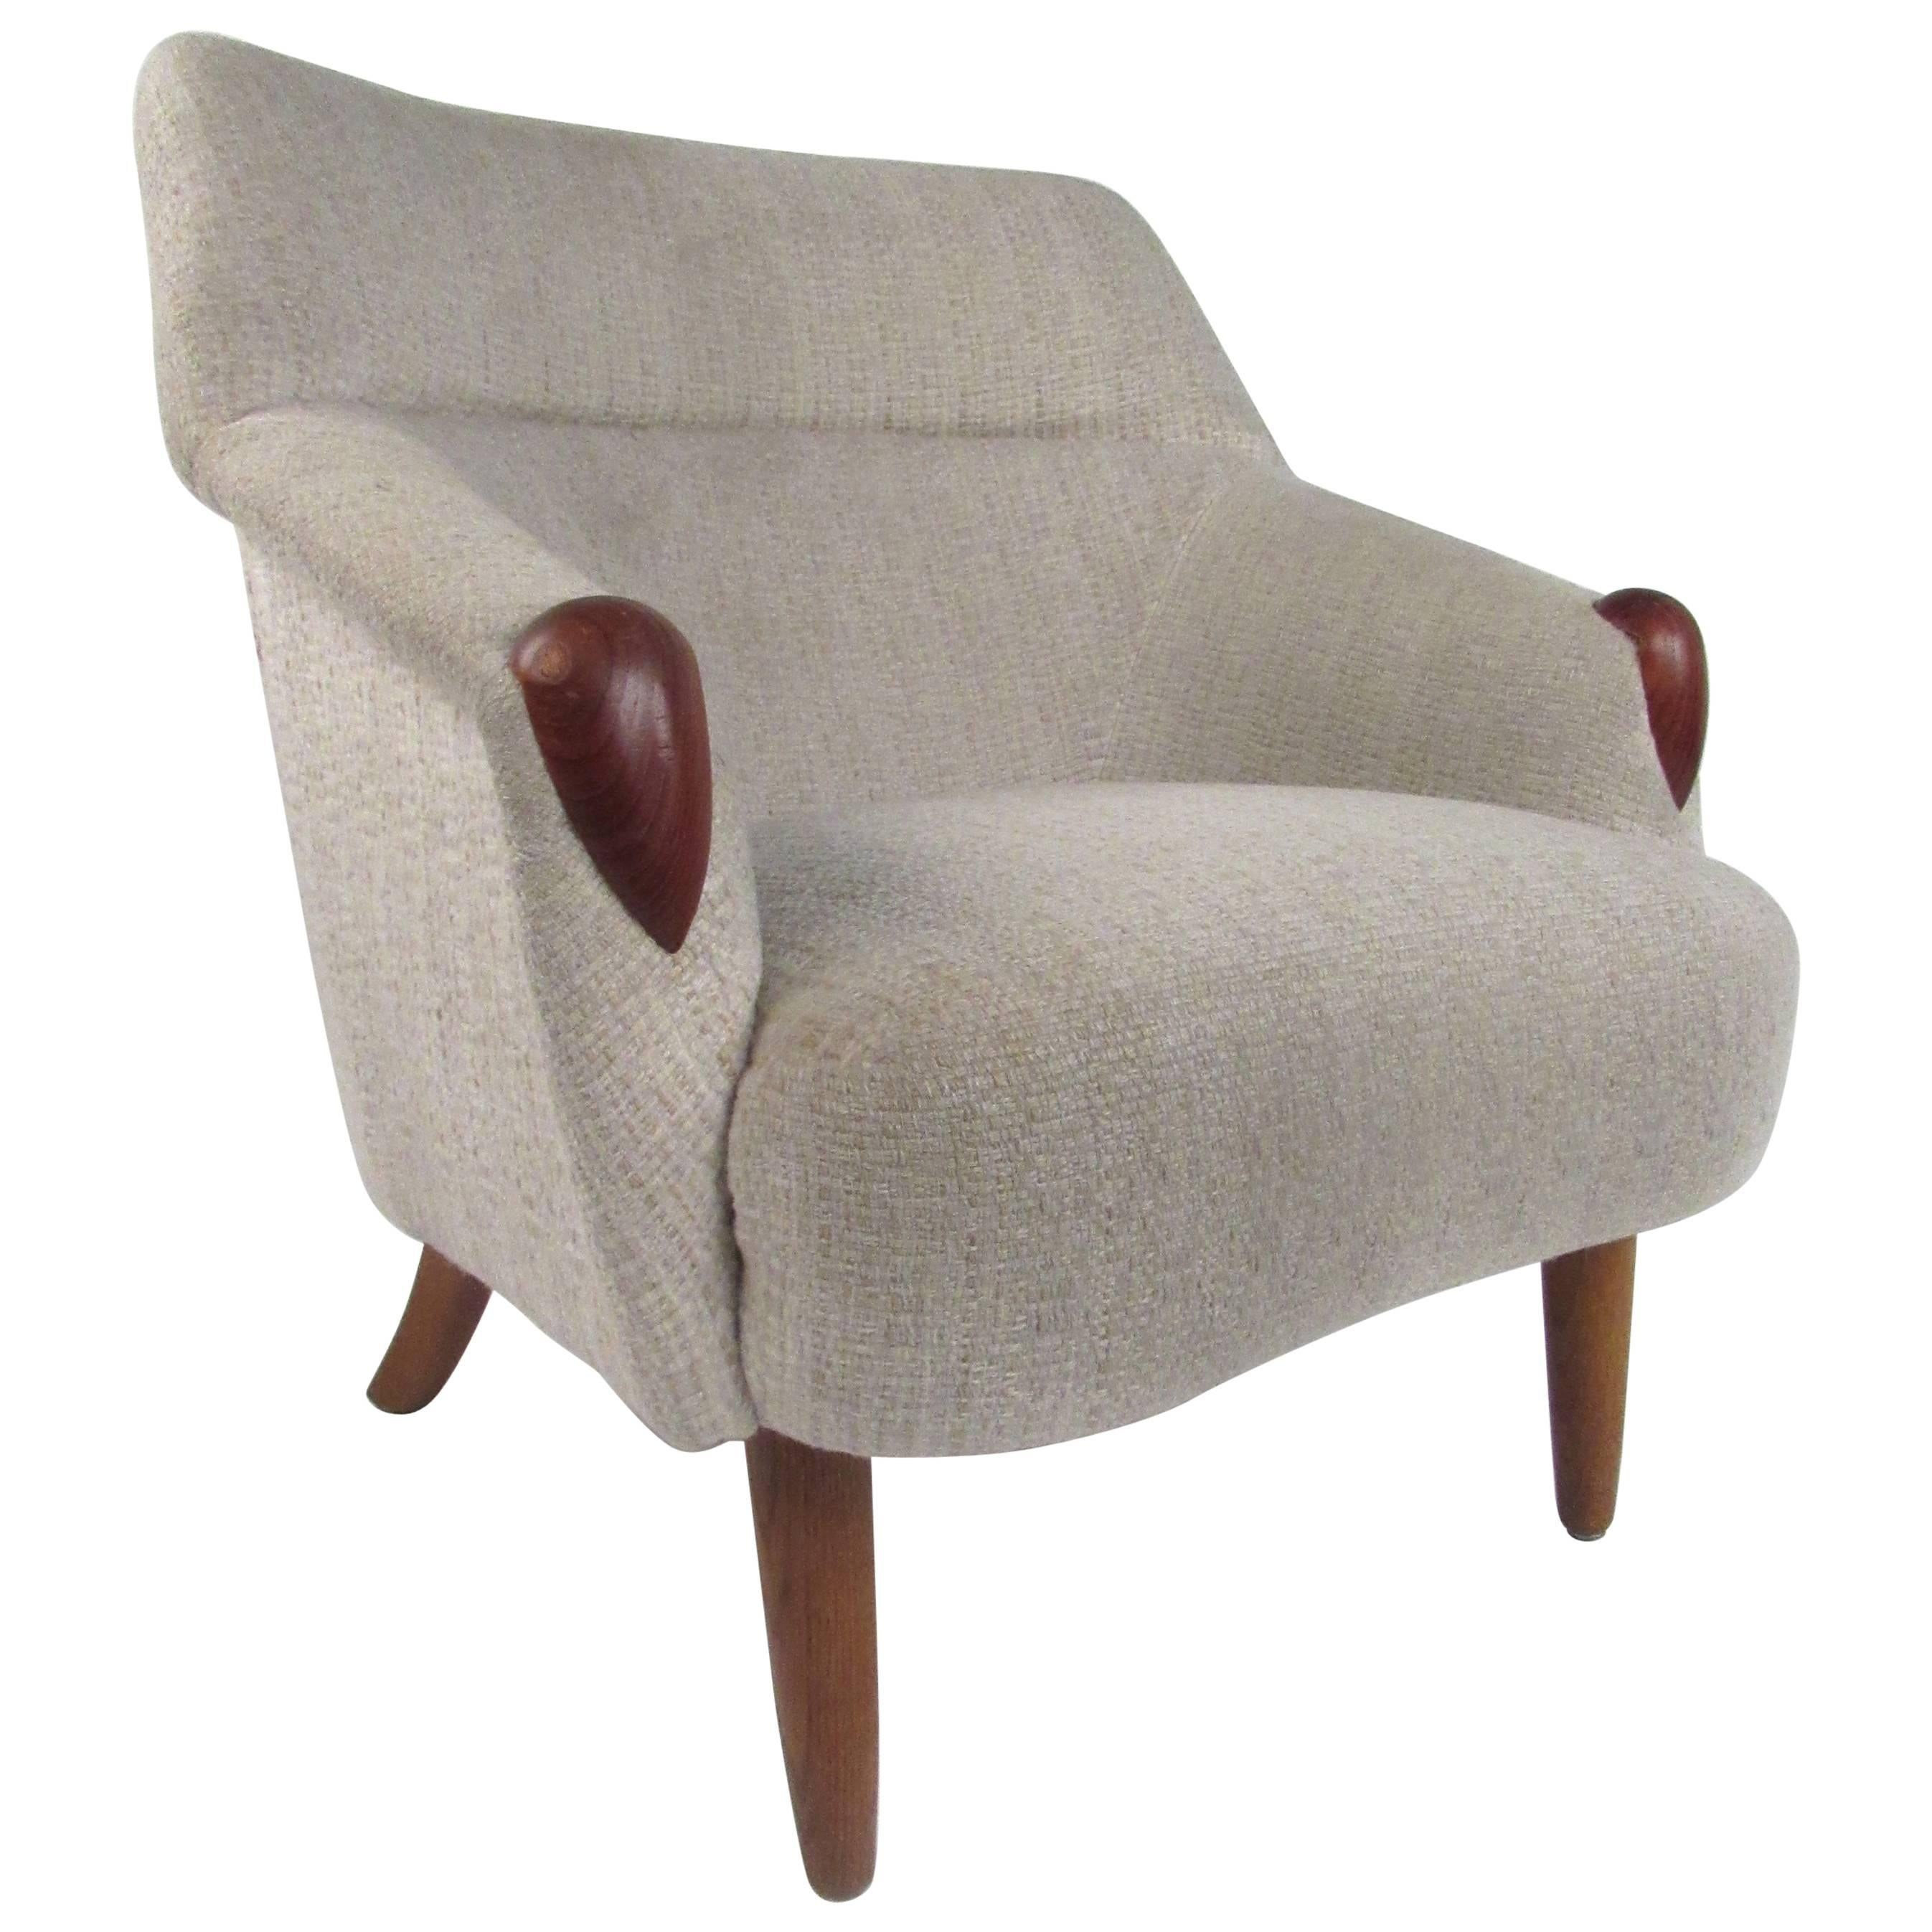 Danish Modern Lounge Chair in the style of Kurt Ostervig